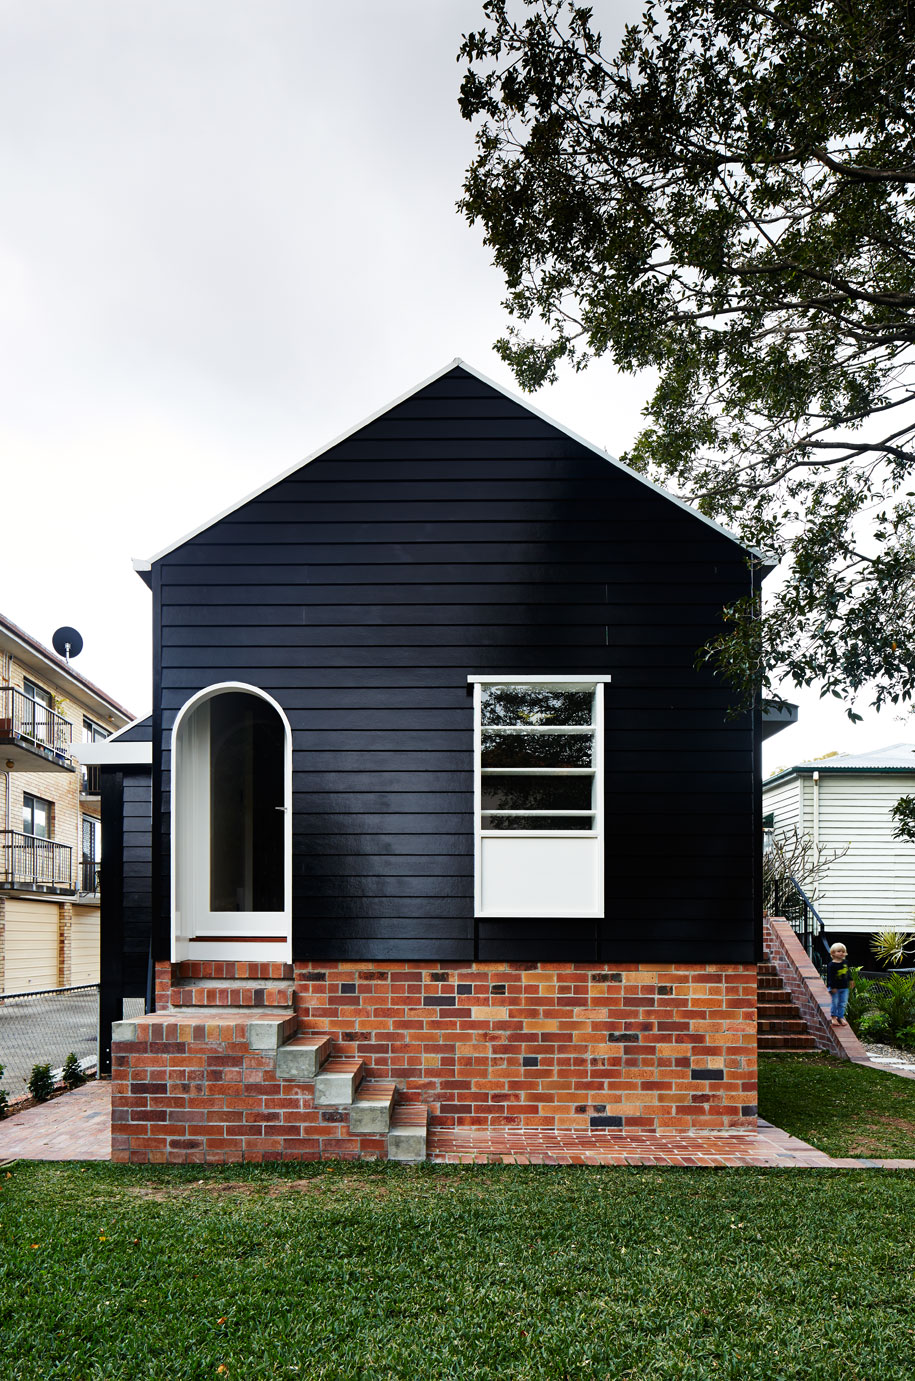 West end cottage renovation a photo essay Black brick homes